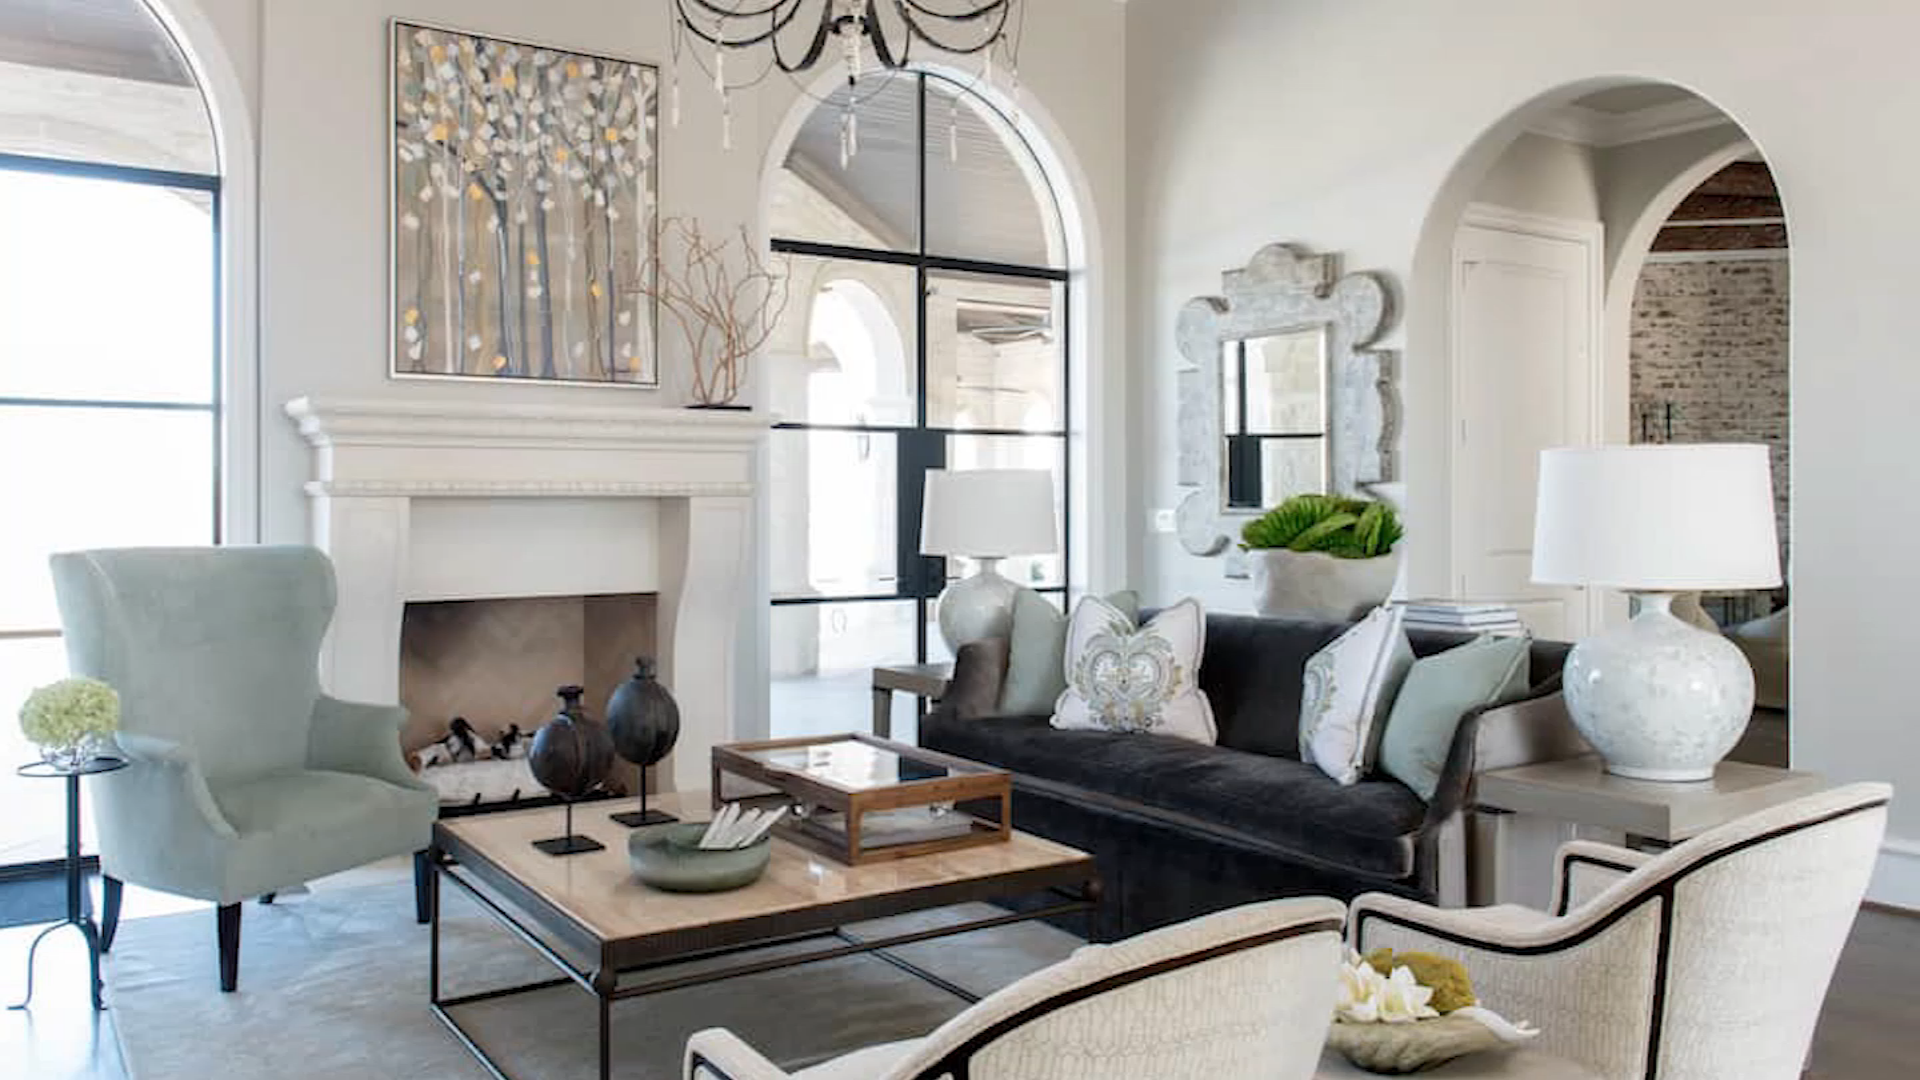 Top 10 Dallas Interior Designers – According to Decorilla